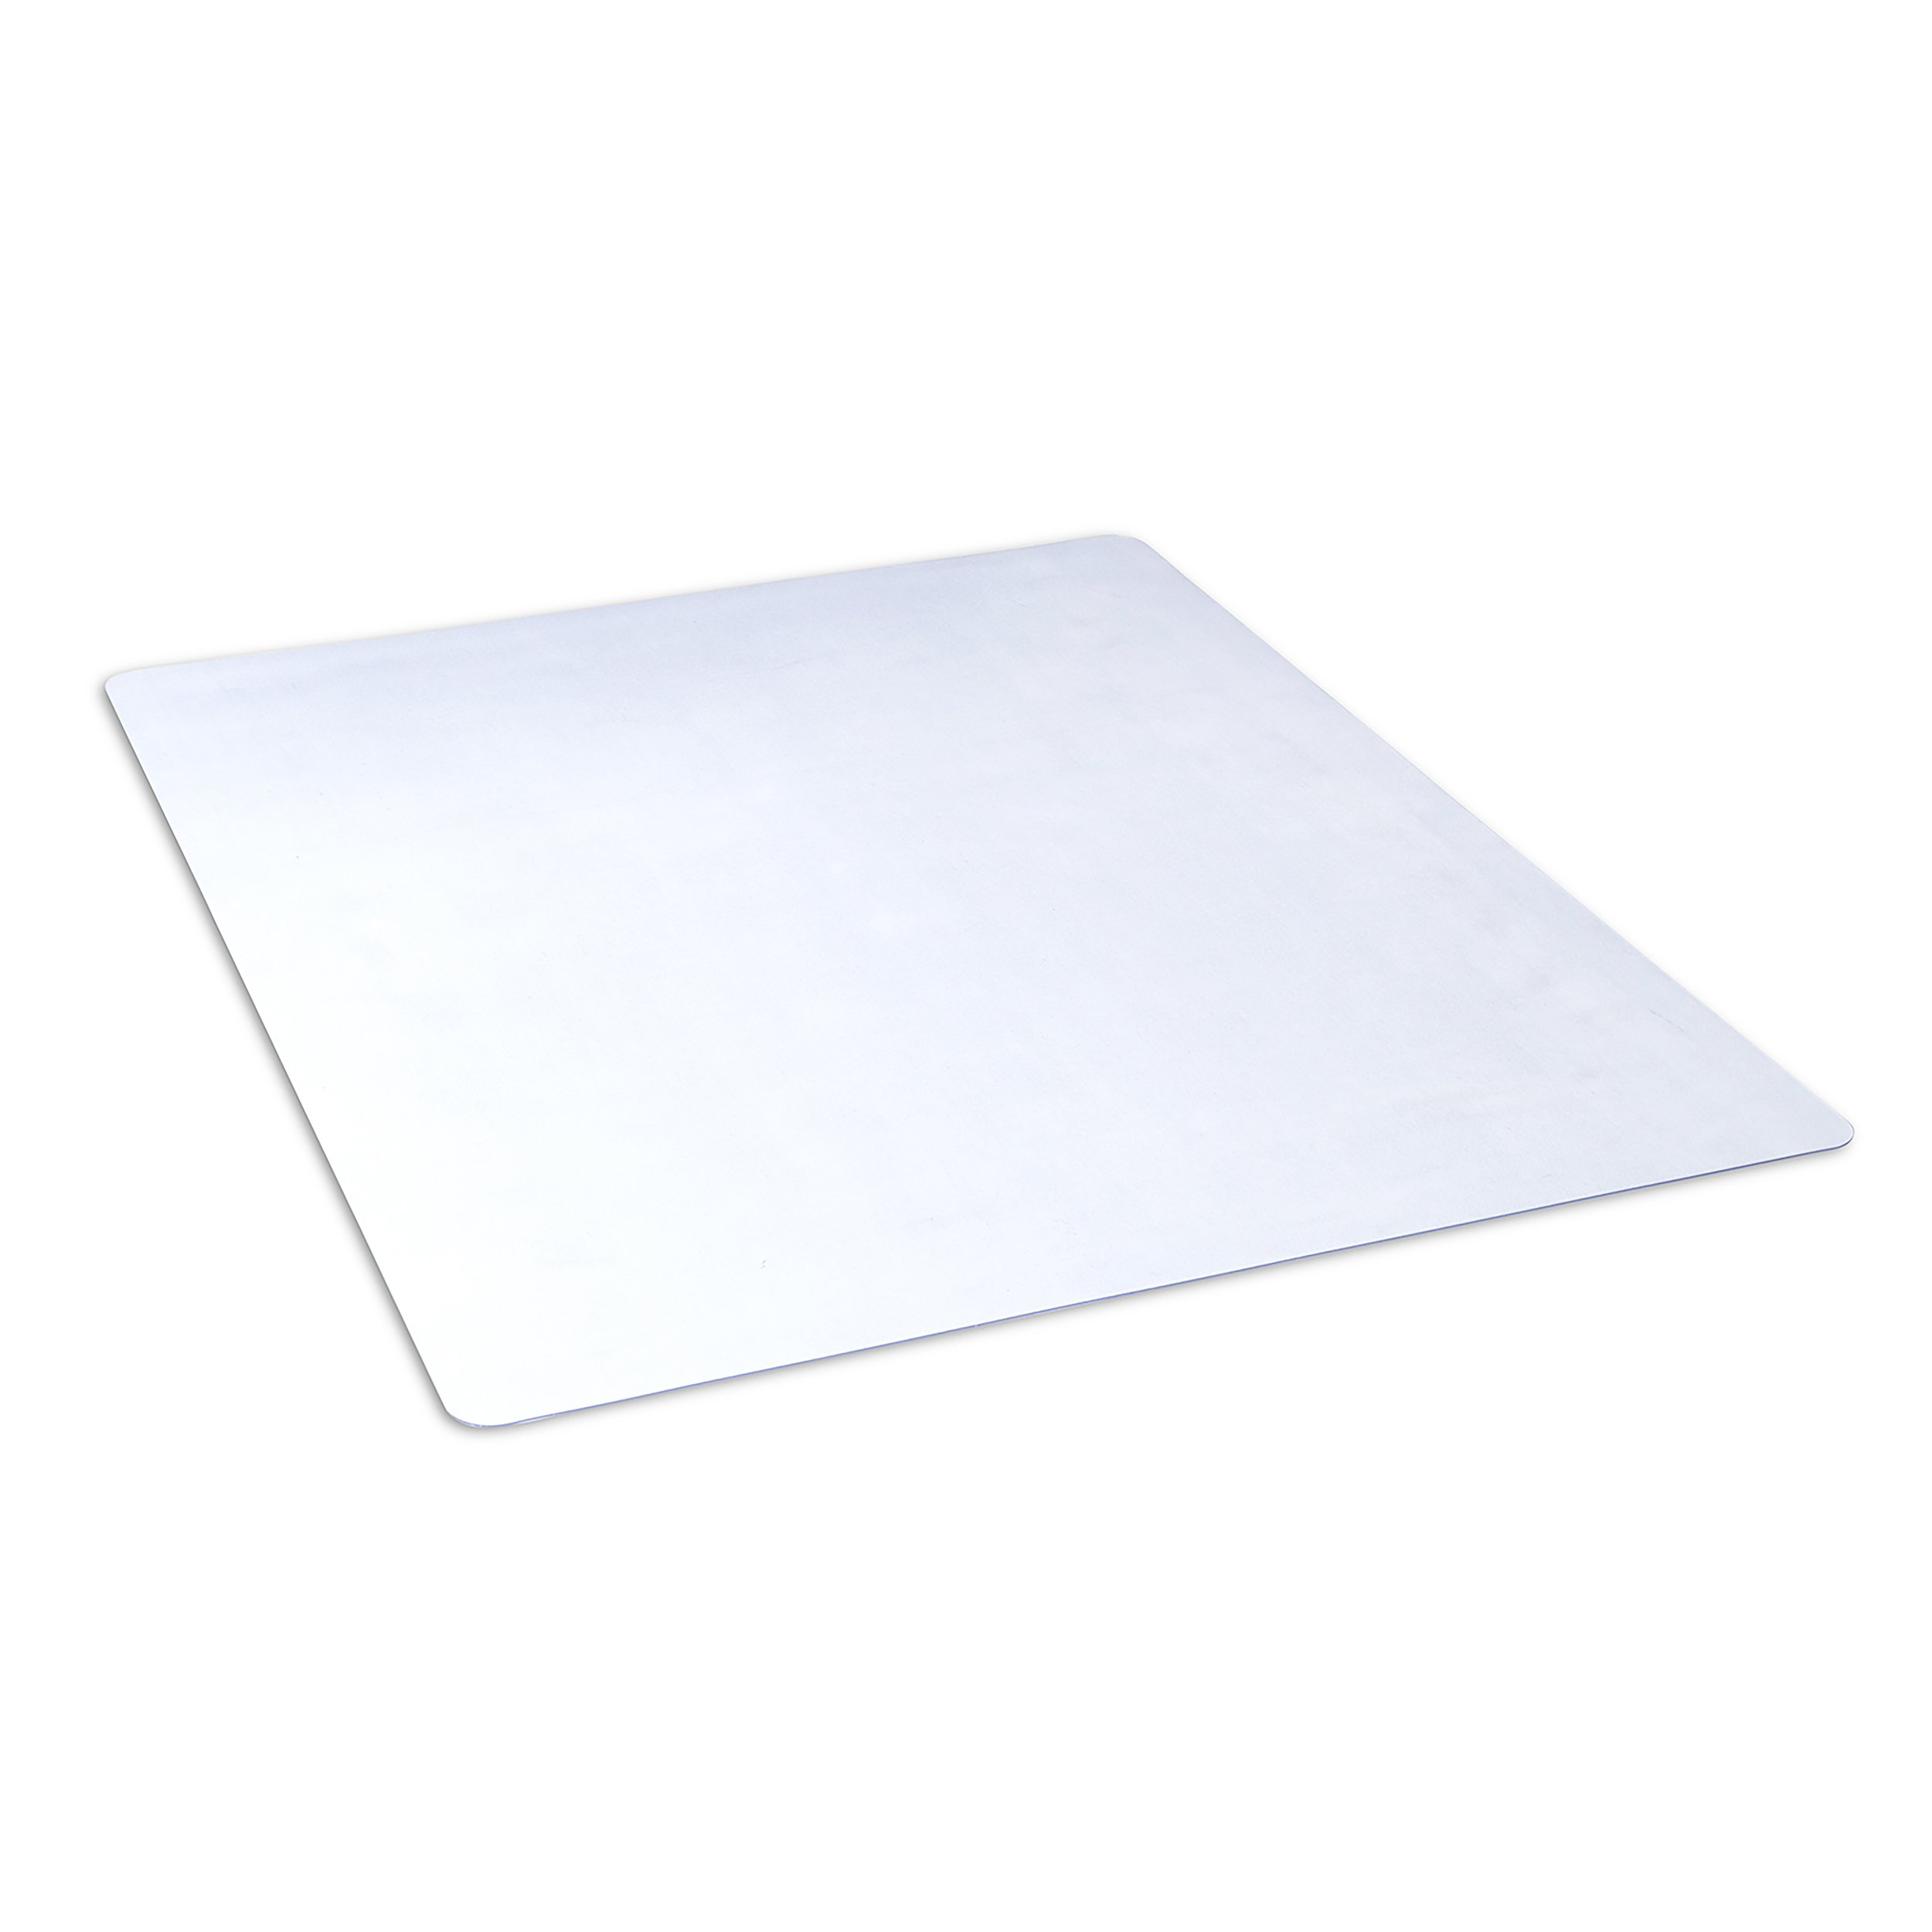 Dimex 46''x 60'' Clear Rectangle Office Chair Mat For Hard Floors (1532630) by Dimex